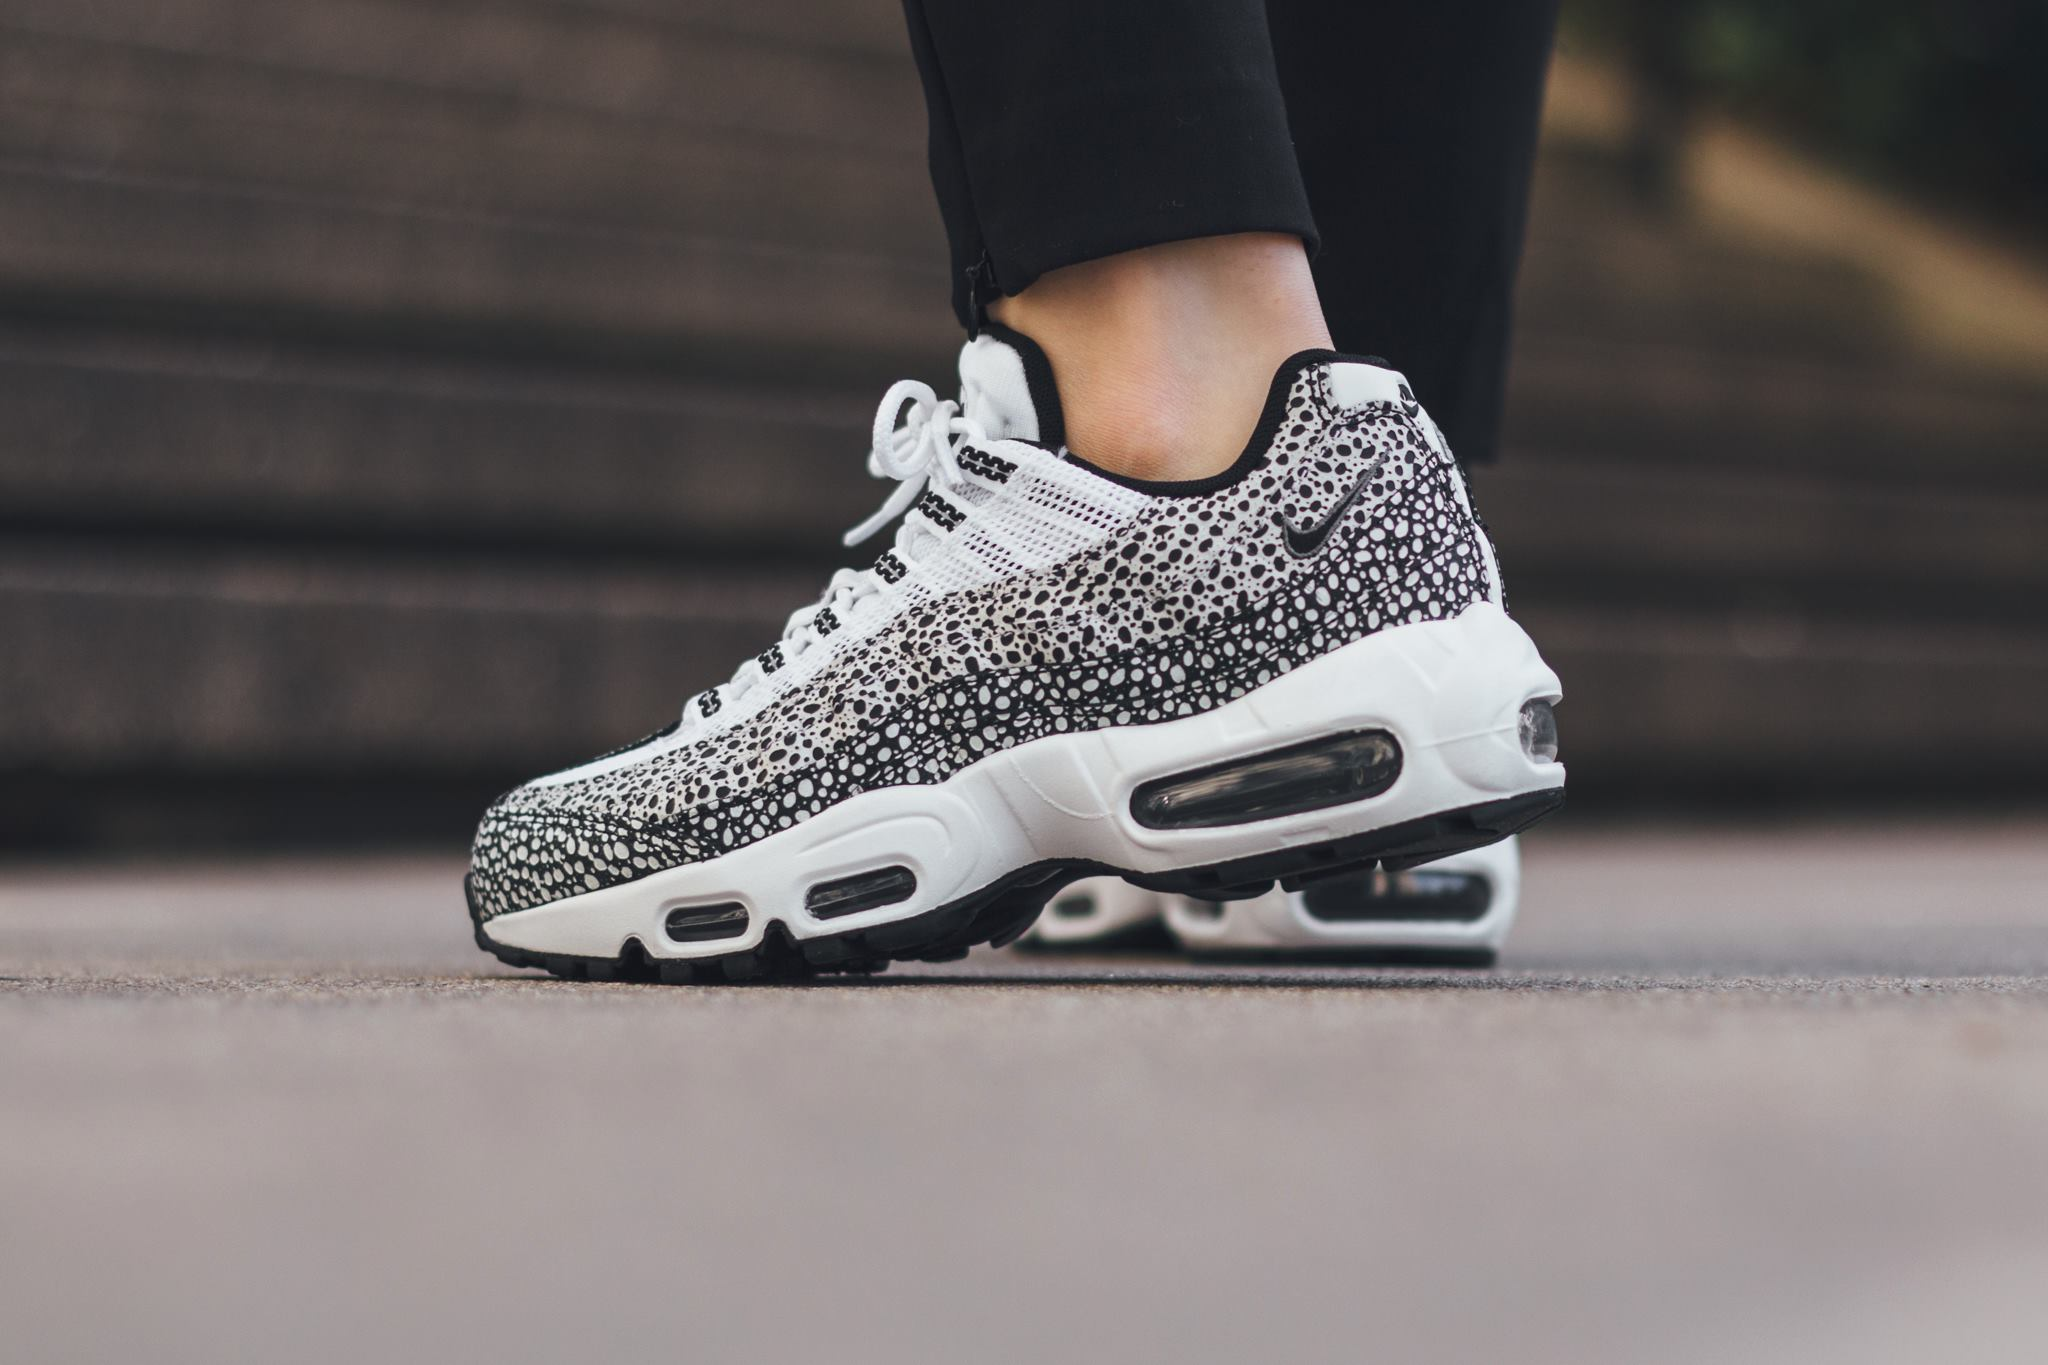 san francisco 67116 f311a With its last notable release being a collaboration with Stussy, the Nike  Air Max 95 is rendered in yet another Safari option this season.